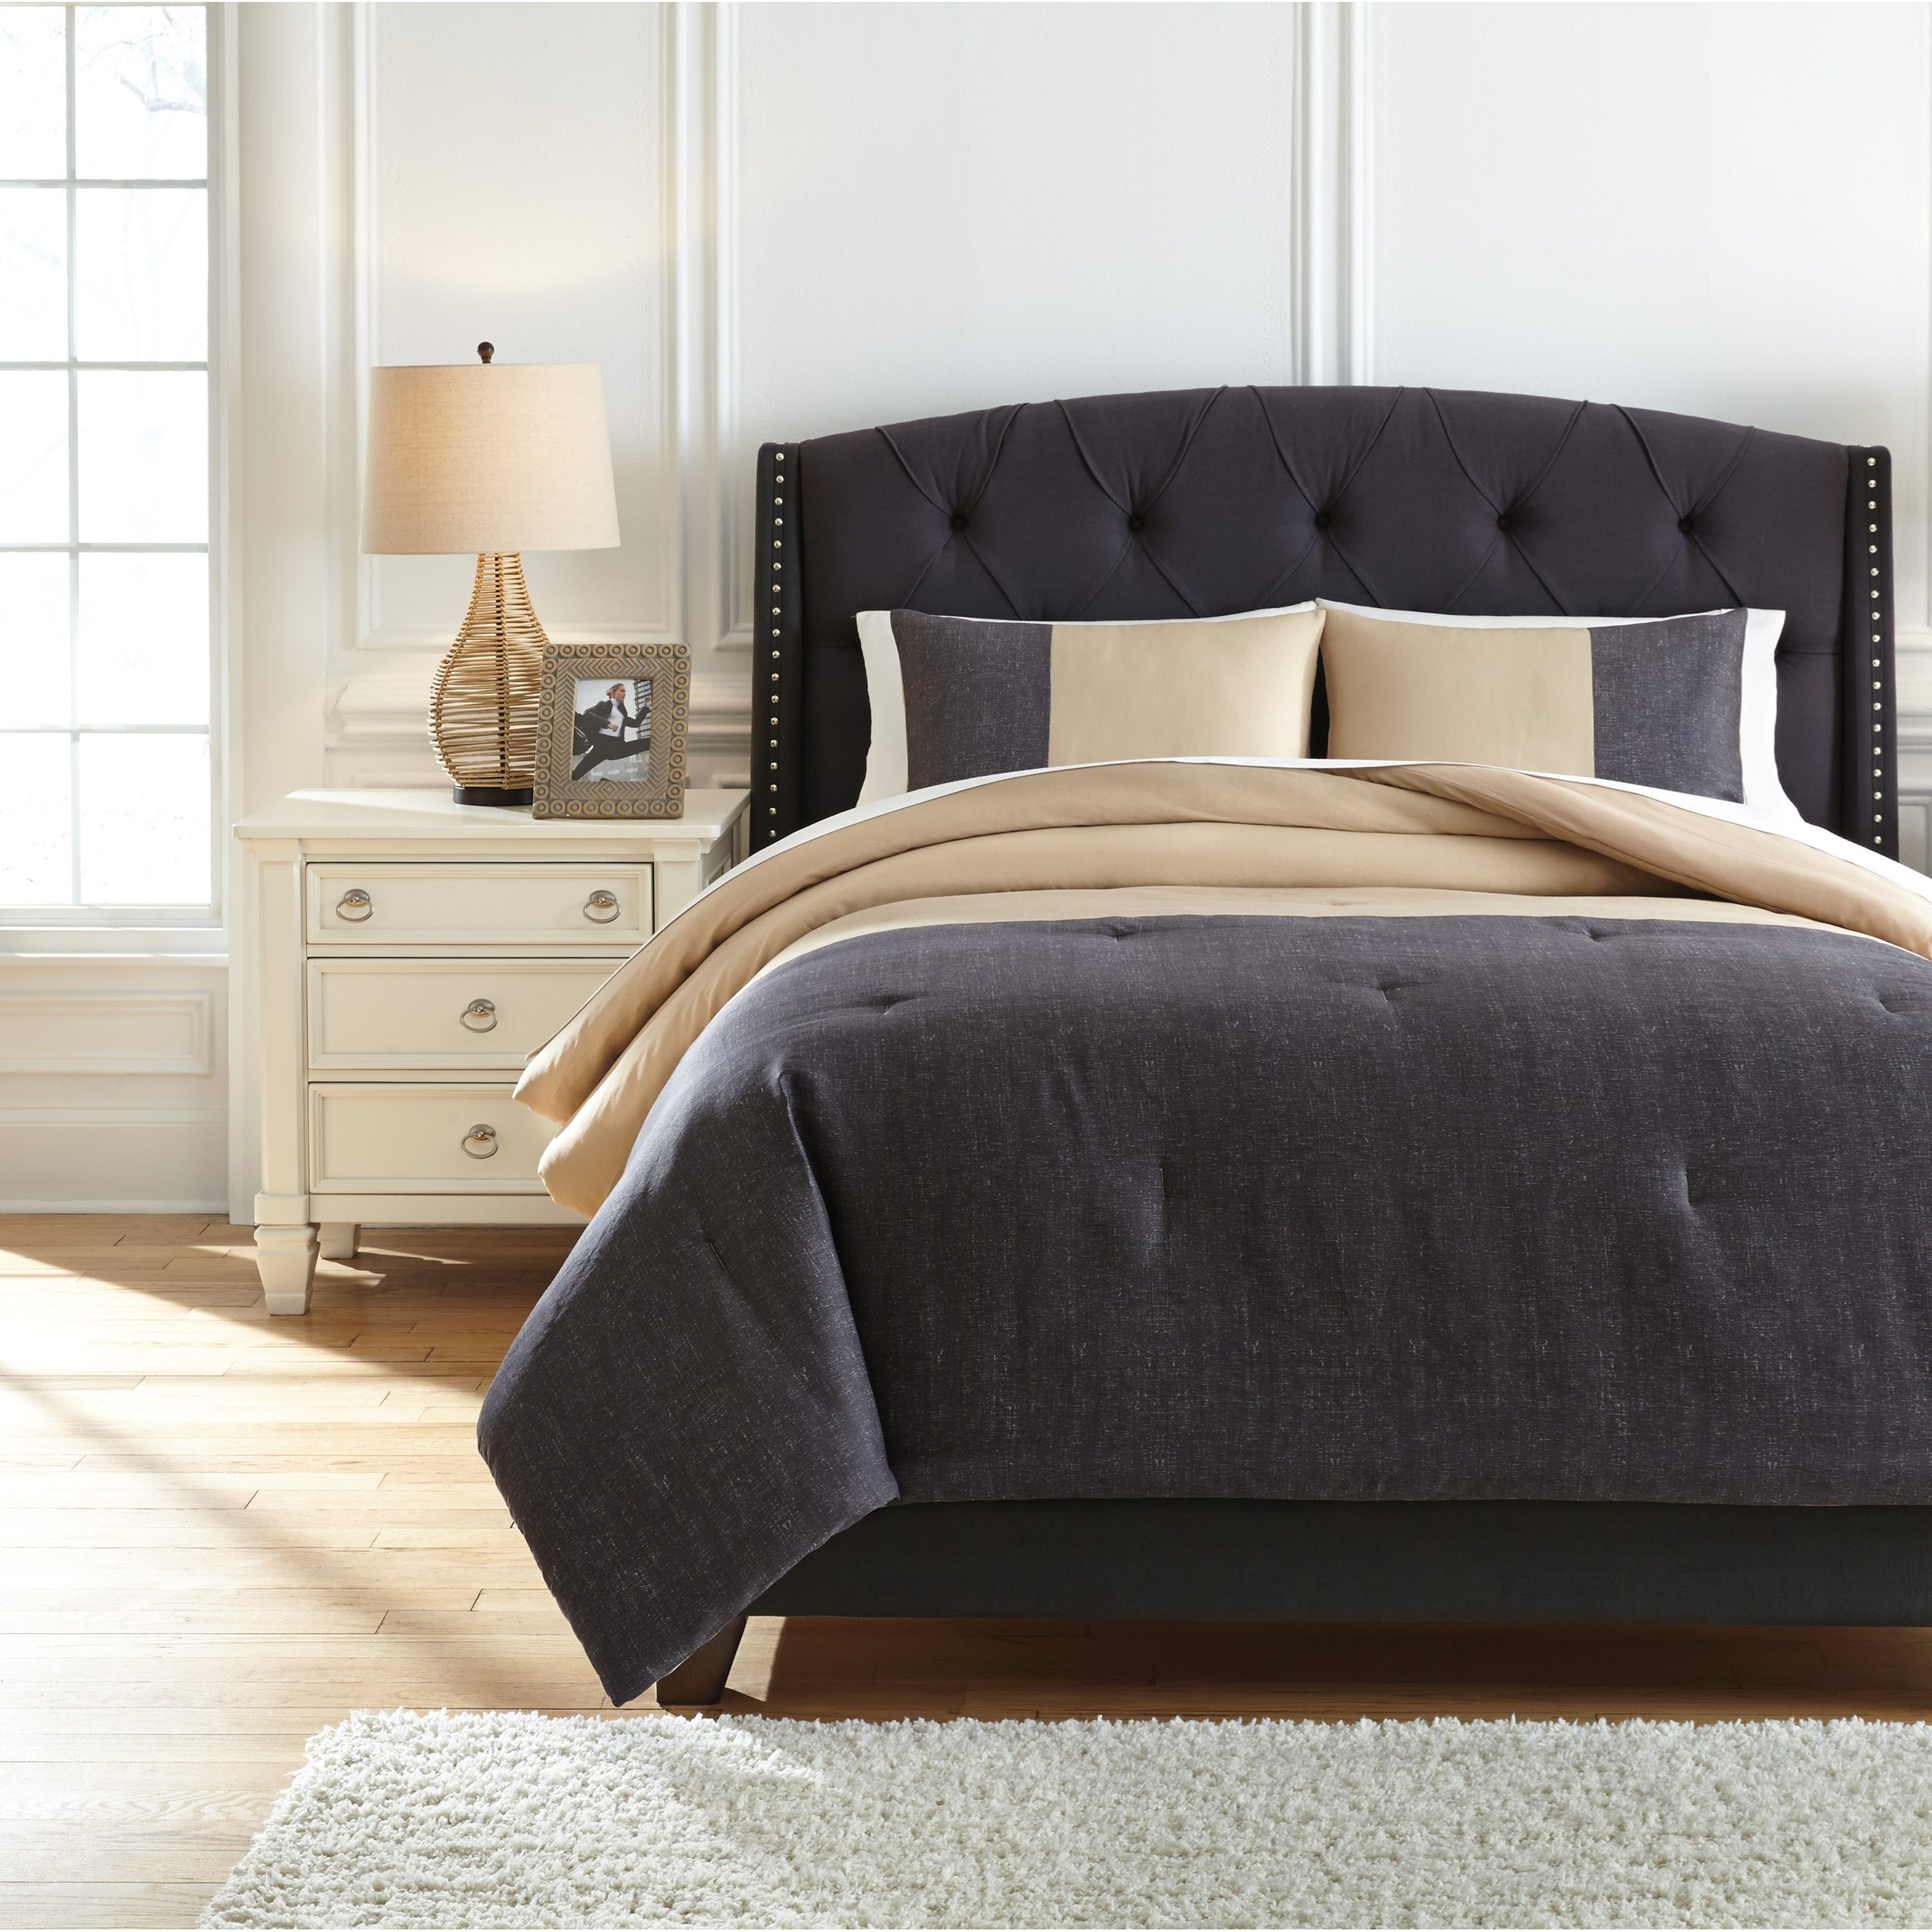 Queen Medi Charcoal/Sand Comforter Set